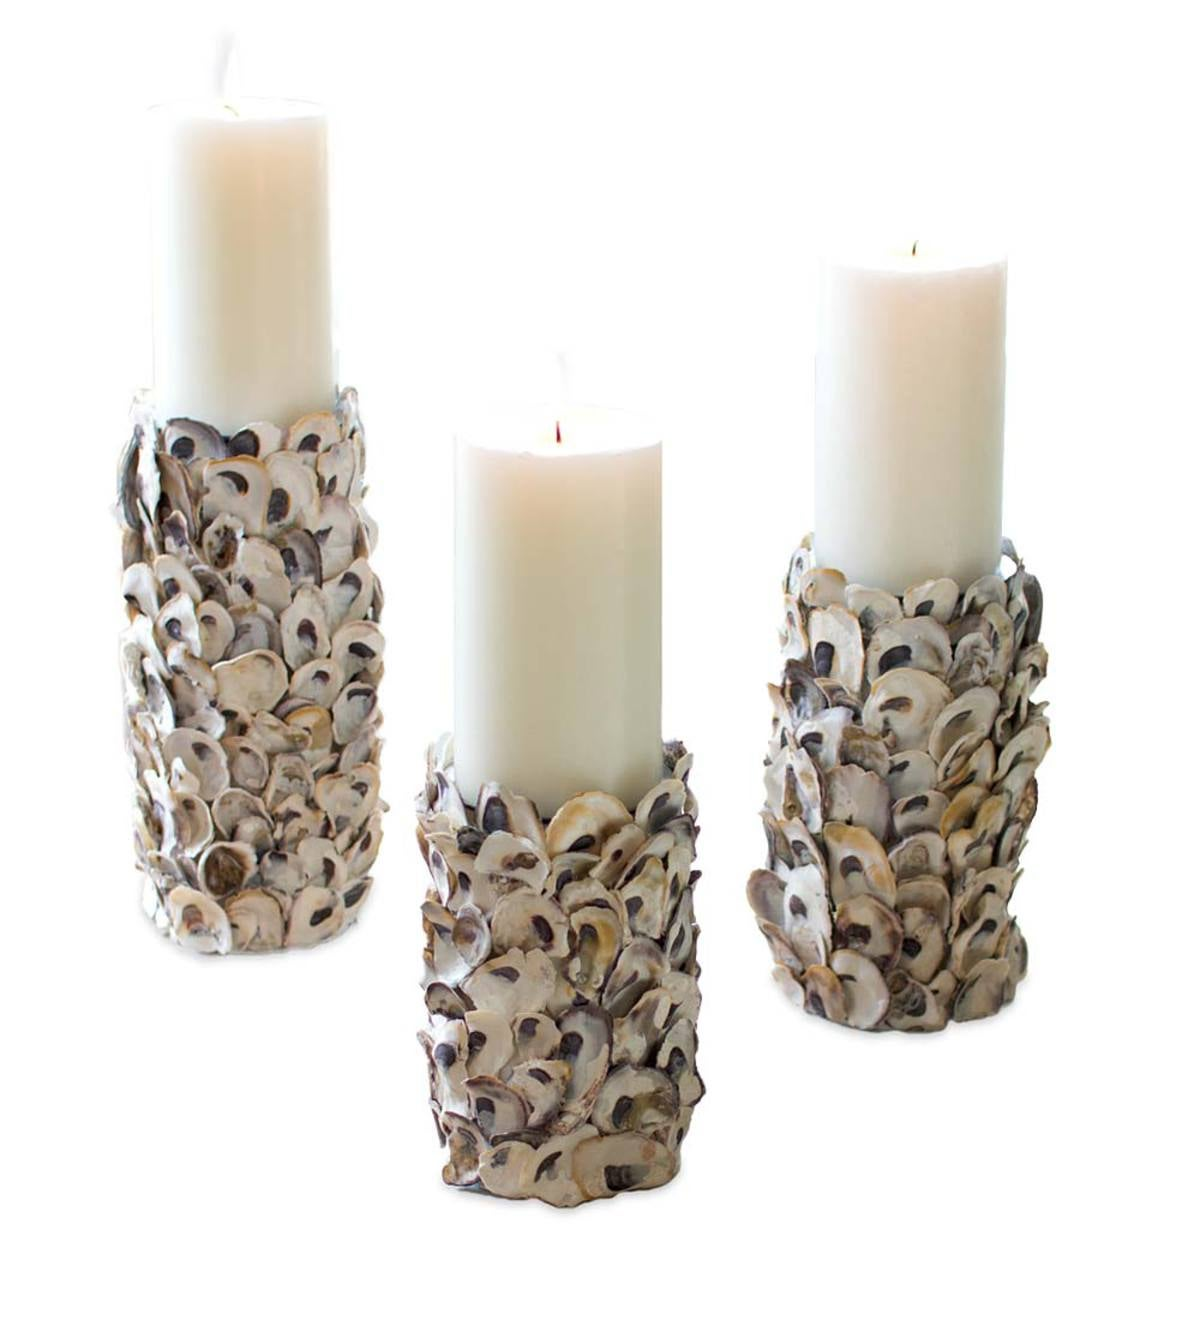 Oyster Shell Candle Holders, Set of 3